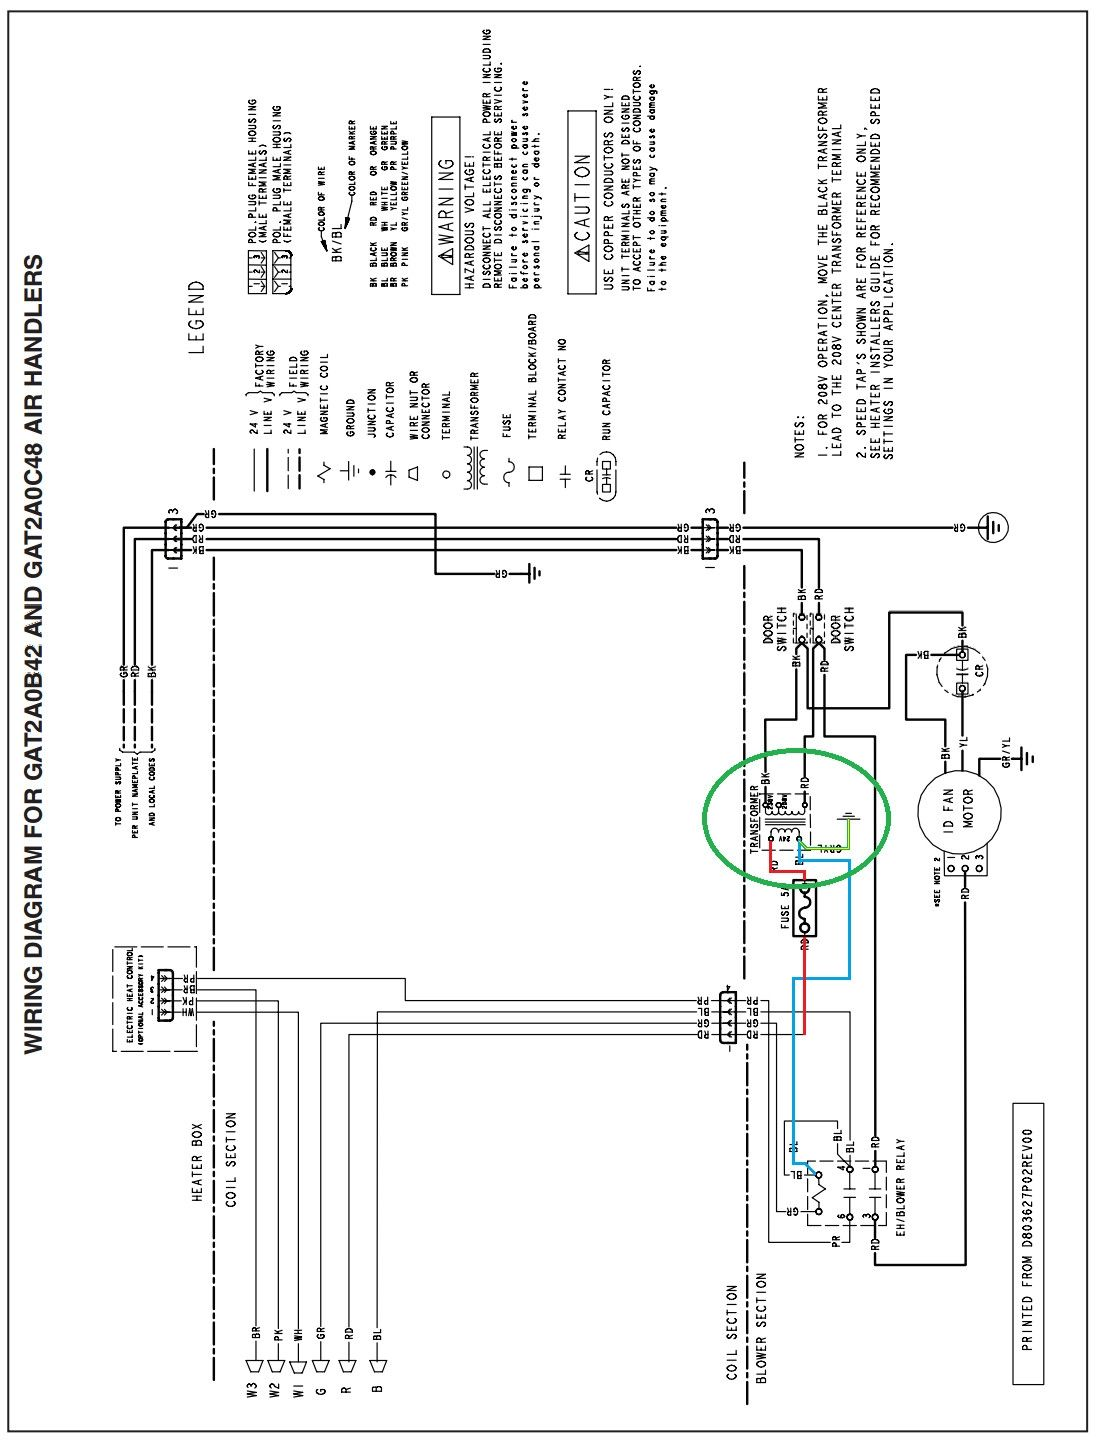 Air Handler Schematic